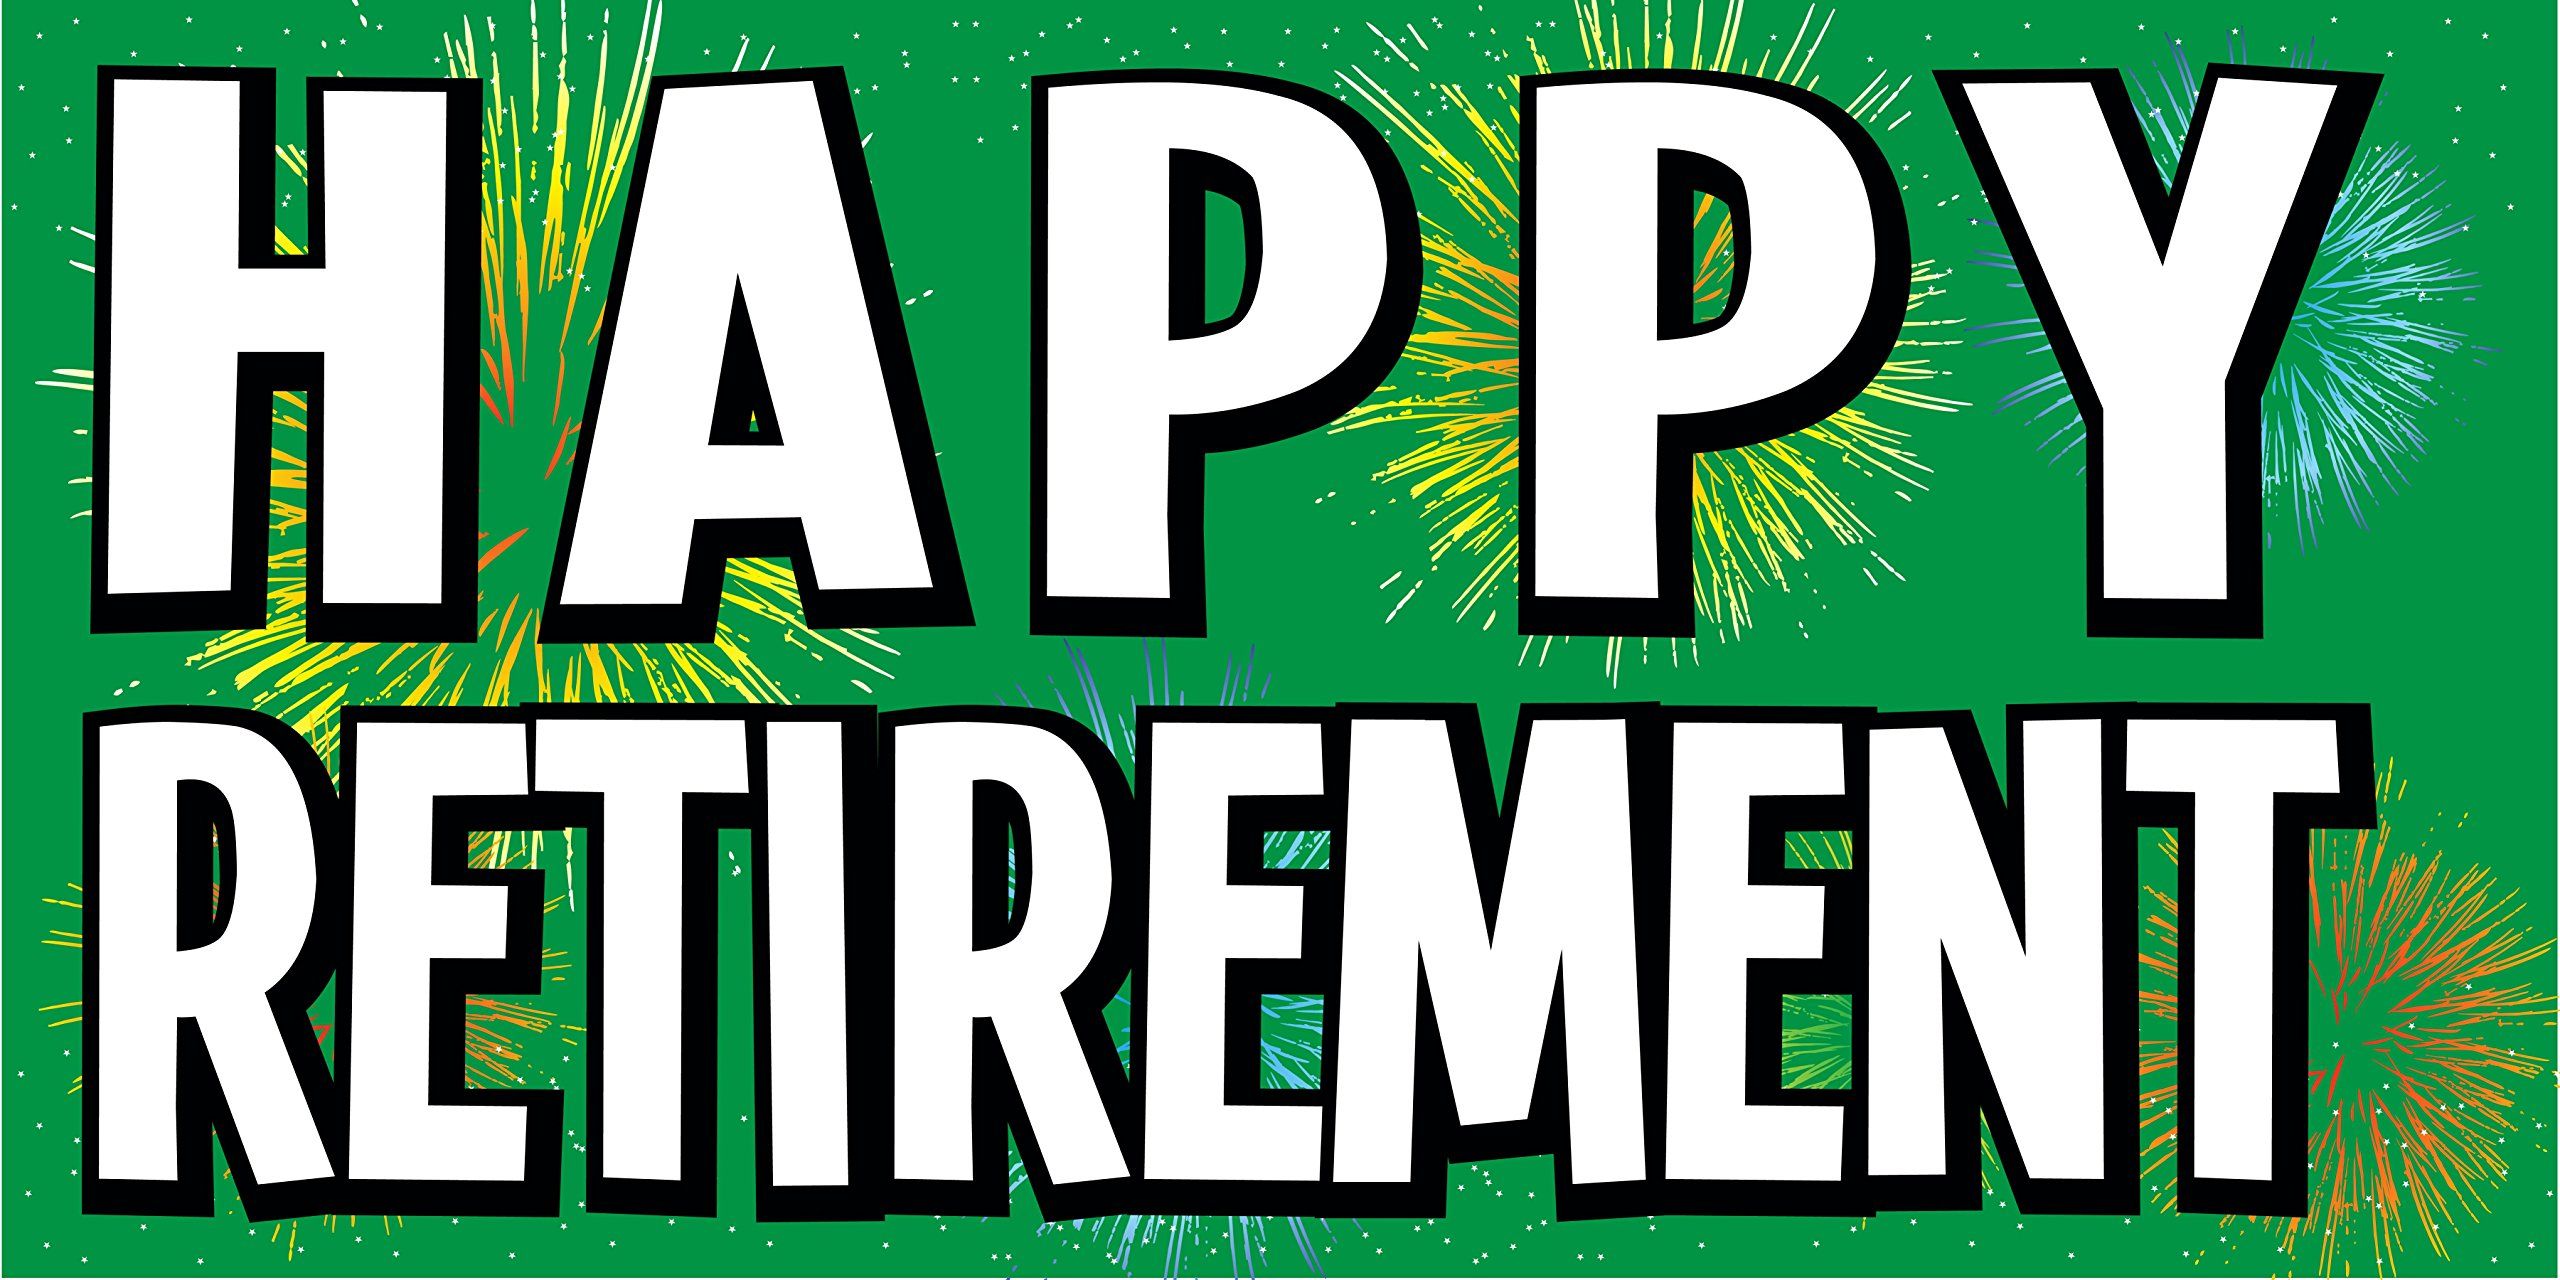 Pre-Printed Happy Retirement Banner - Fireworks - Green (10' x 5') Sewn with metal grommets by Reliable Banner Sign Supply & Printing